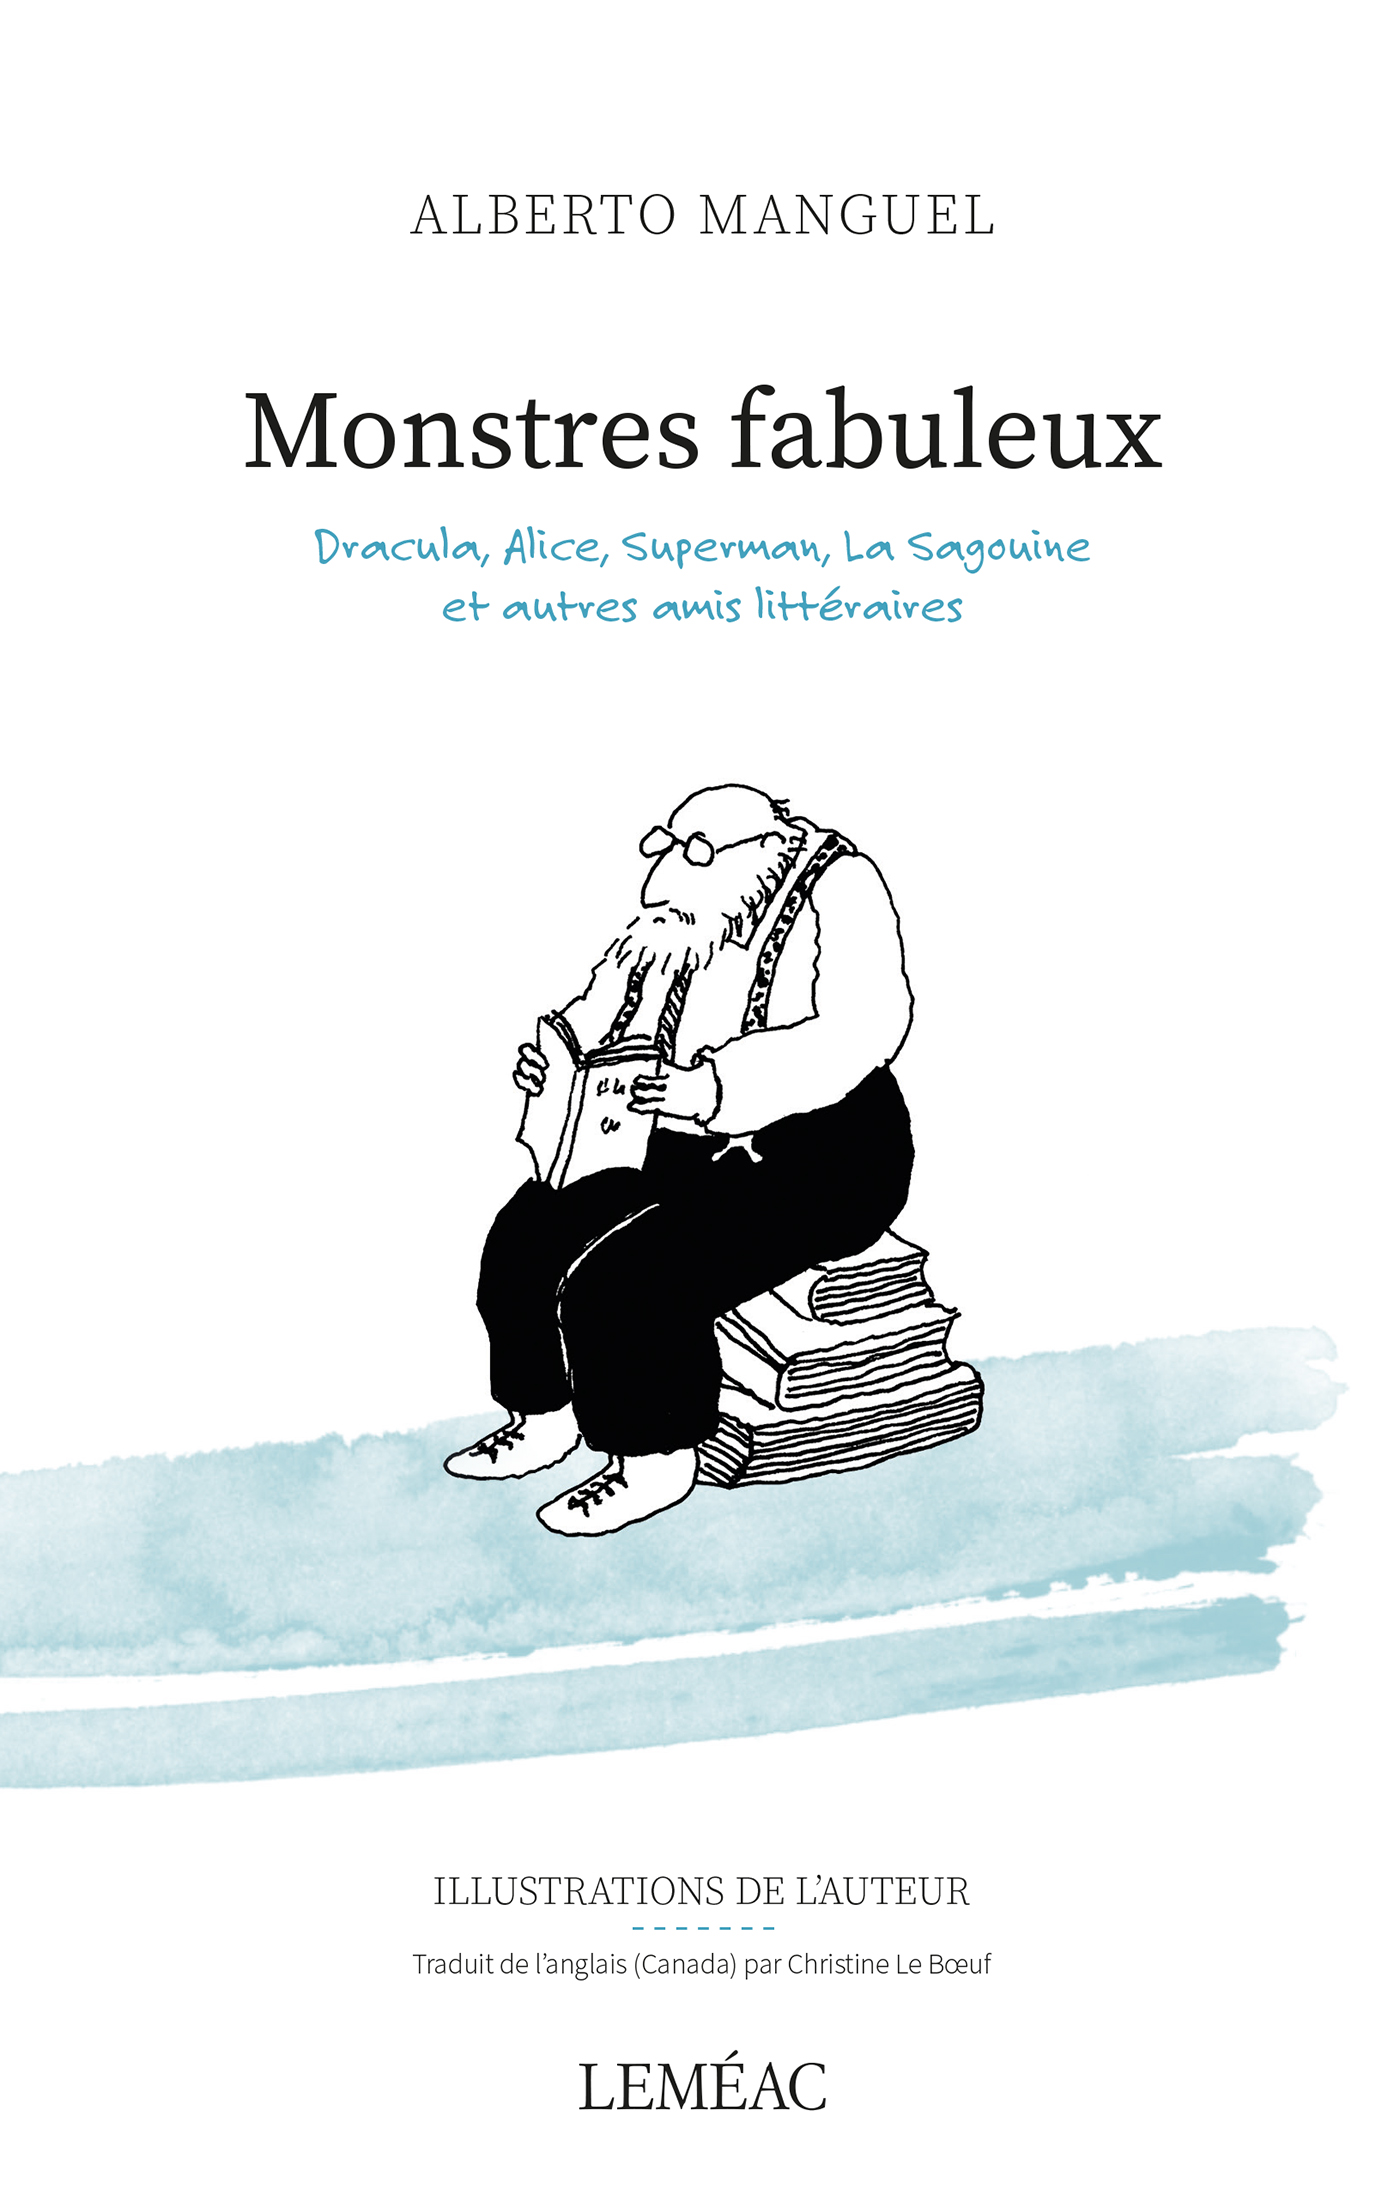 Monstres fabuleux - Alberto Manguel